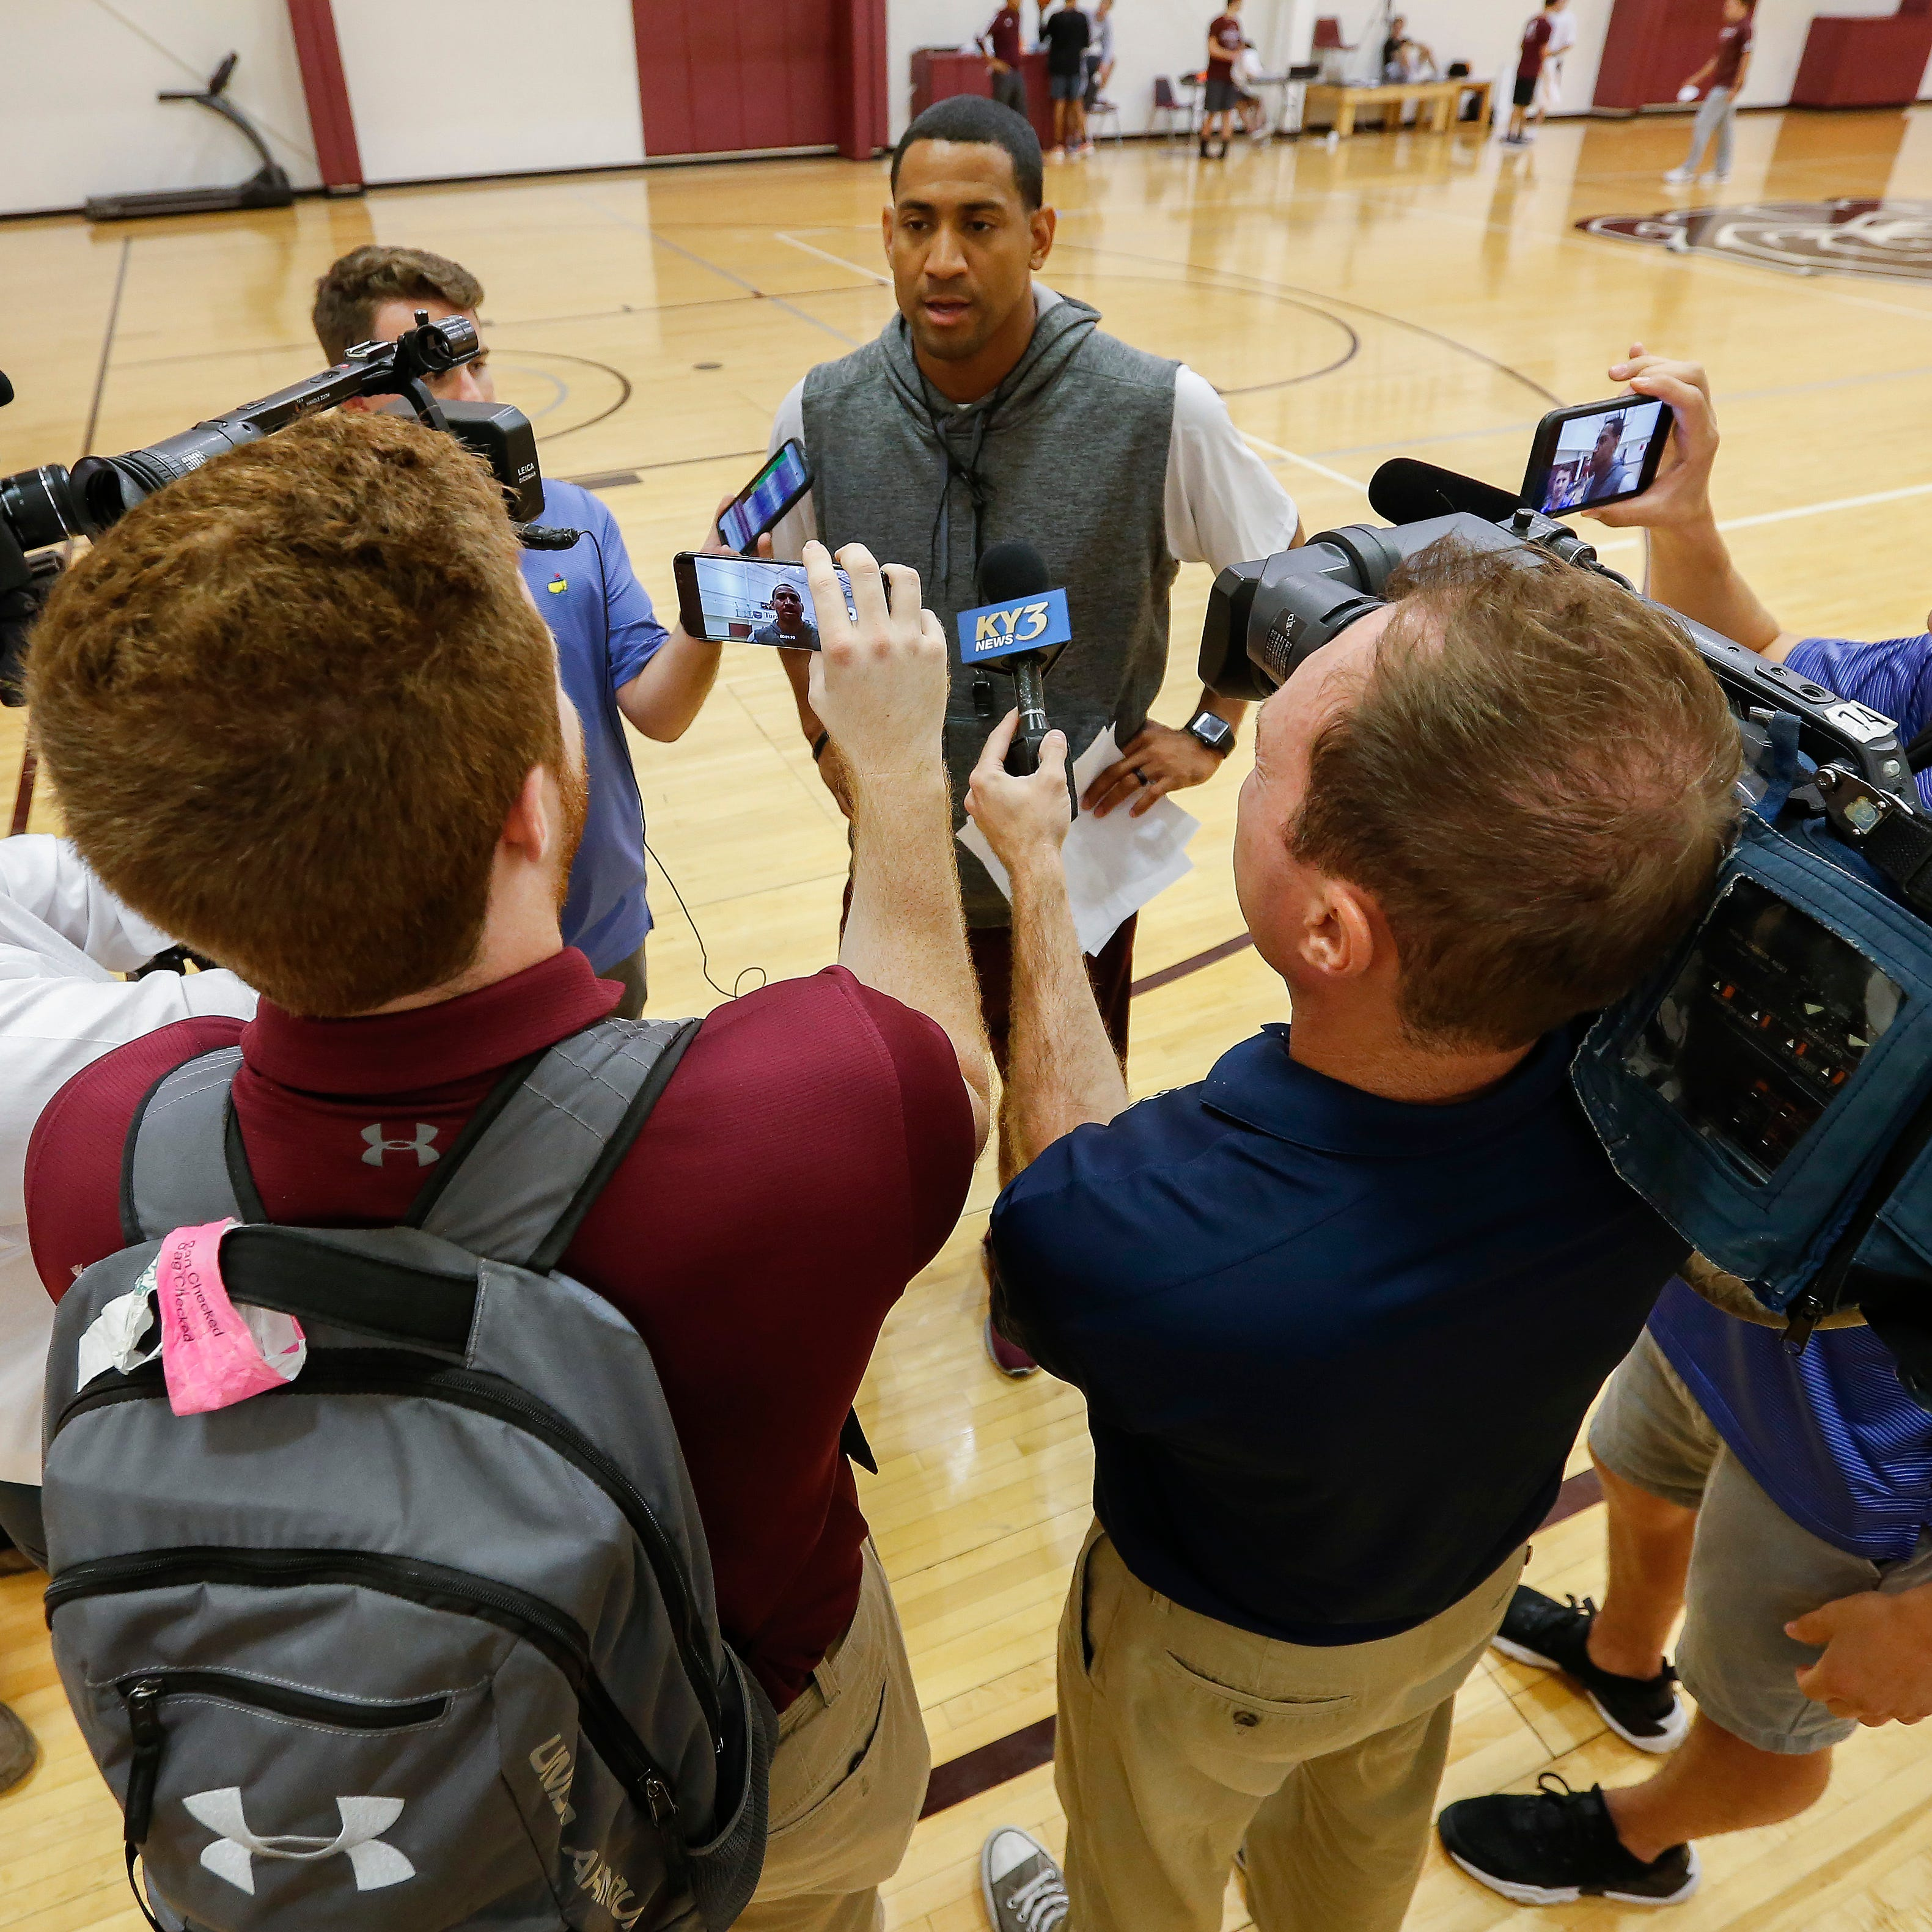 'We have such a long way to go': What we learned from Missouri State men's hoops media day